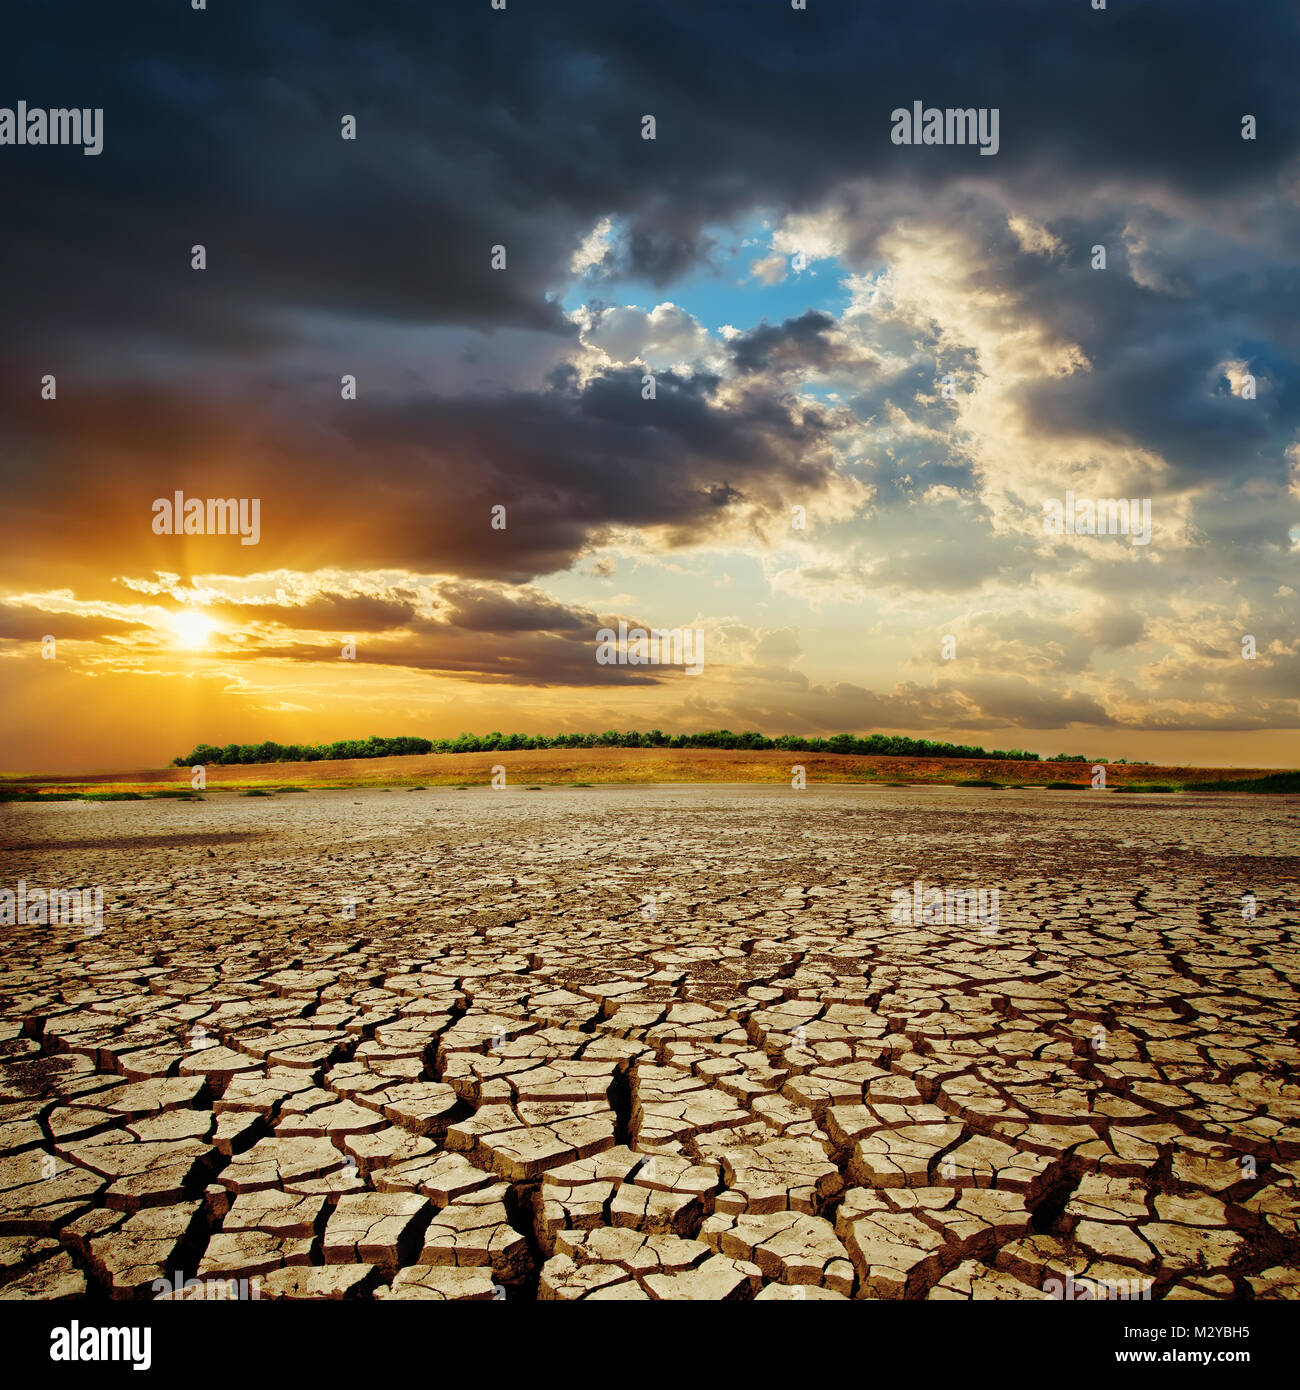 drought earth in sunset. dramatic sky over desert. change climat - Stock Image